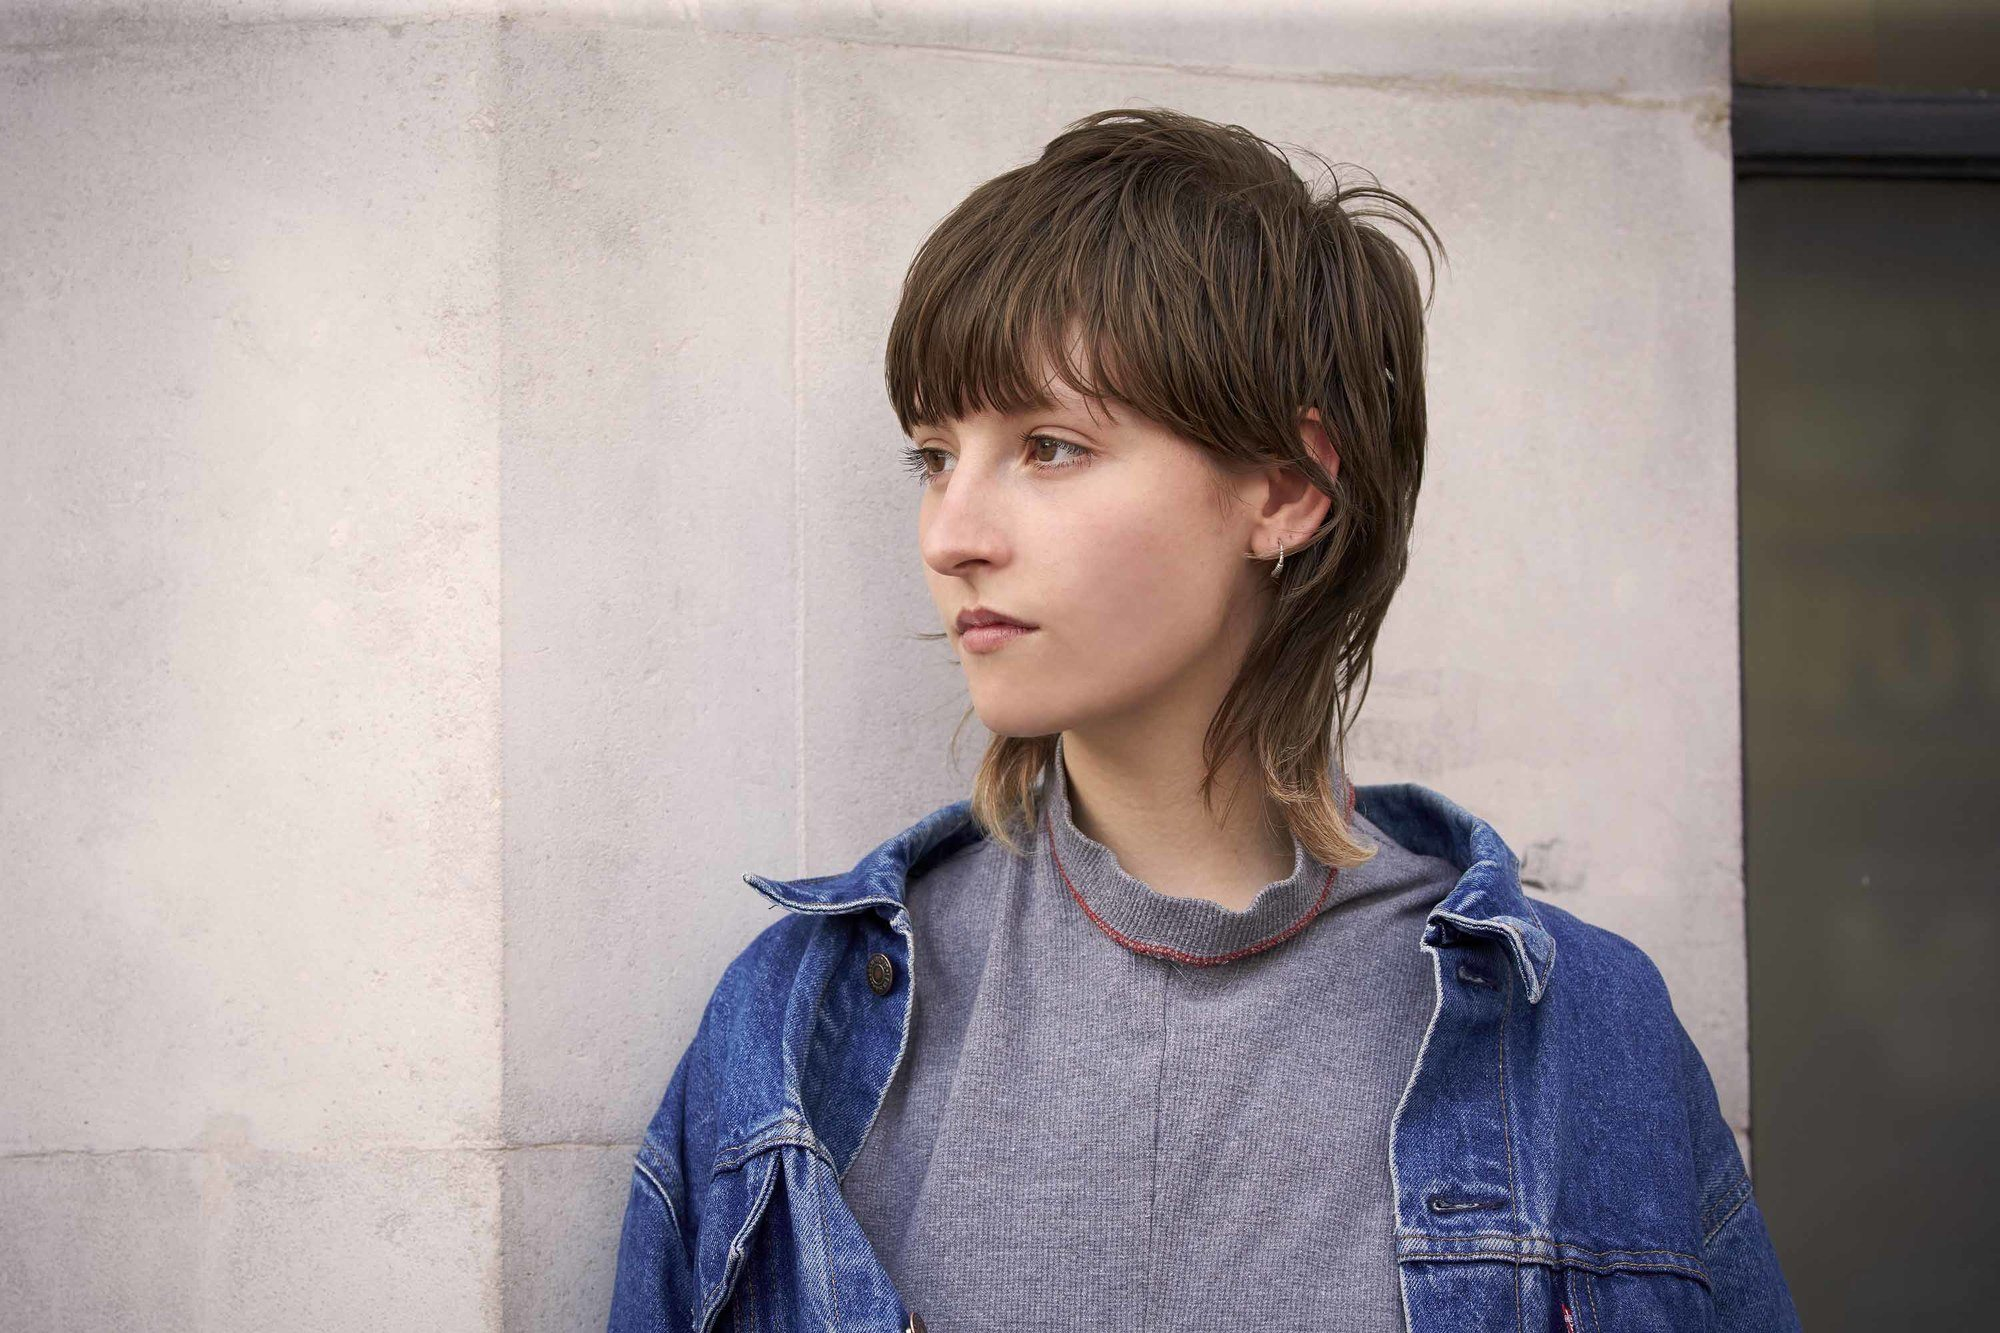 model with funky short hair in a mullet style, wearing denim